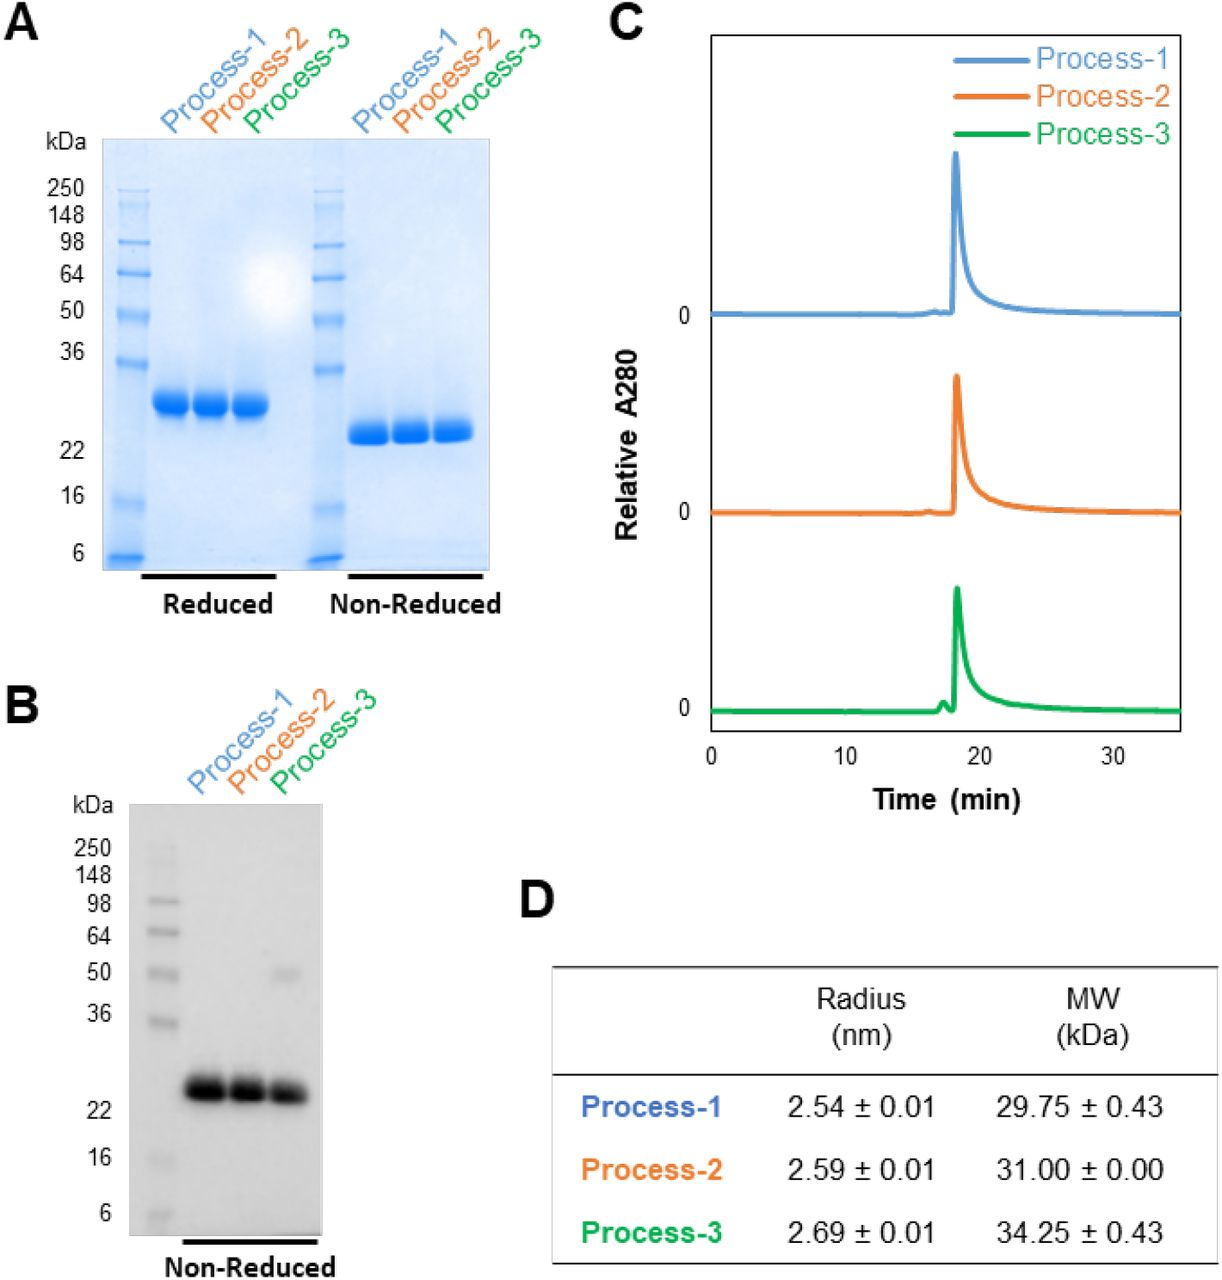 Characterization of purified RBD219-N1C1 proteins from three processes. (A-B) Purified proteins are analyzed by SDS-PAGE gel with Coomassie Blue stain (A) and Western blot with a monoclonal SARS-CoV-2 Spike antibody (B). (C-D) Size and aggregates evaluation by SEC-HPLC (C) and the radius and size in solution measured by Dynamic Light Scattering (D). (D) Averages ± SD are shown from four independent measurements.